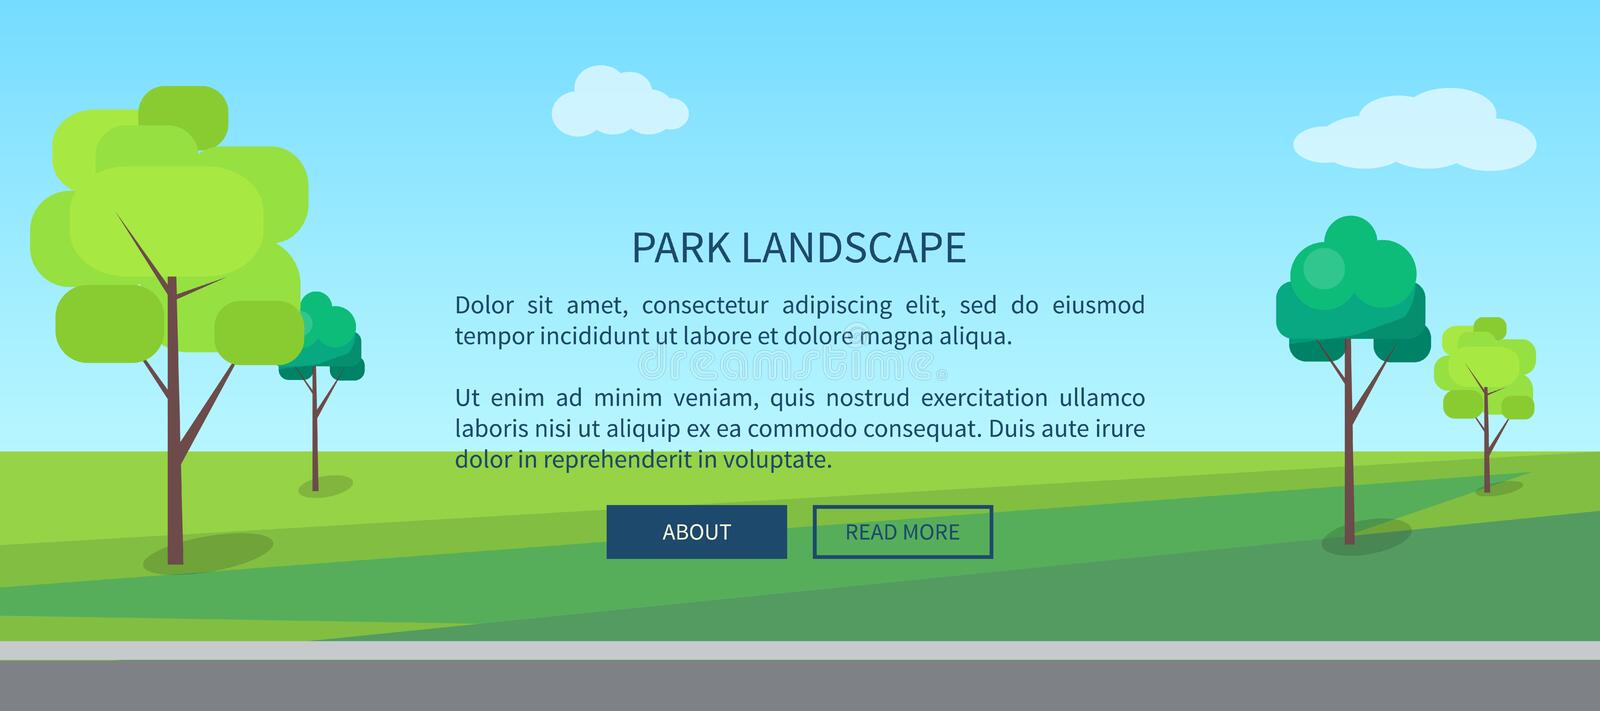 Park Landscape Web Banner with Green Lawn Vector. Park landscape web banner with green lawn and trees vector illustration in flat design cartoon style. Outdoors stock illustration